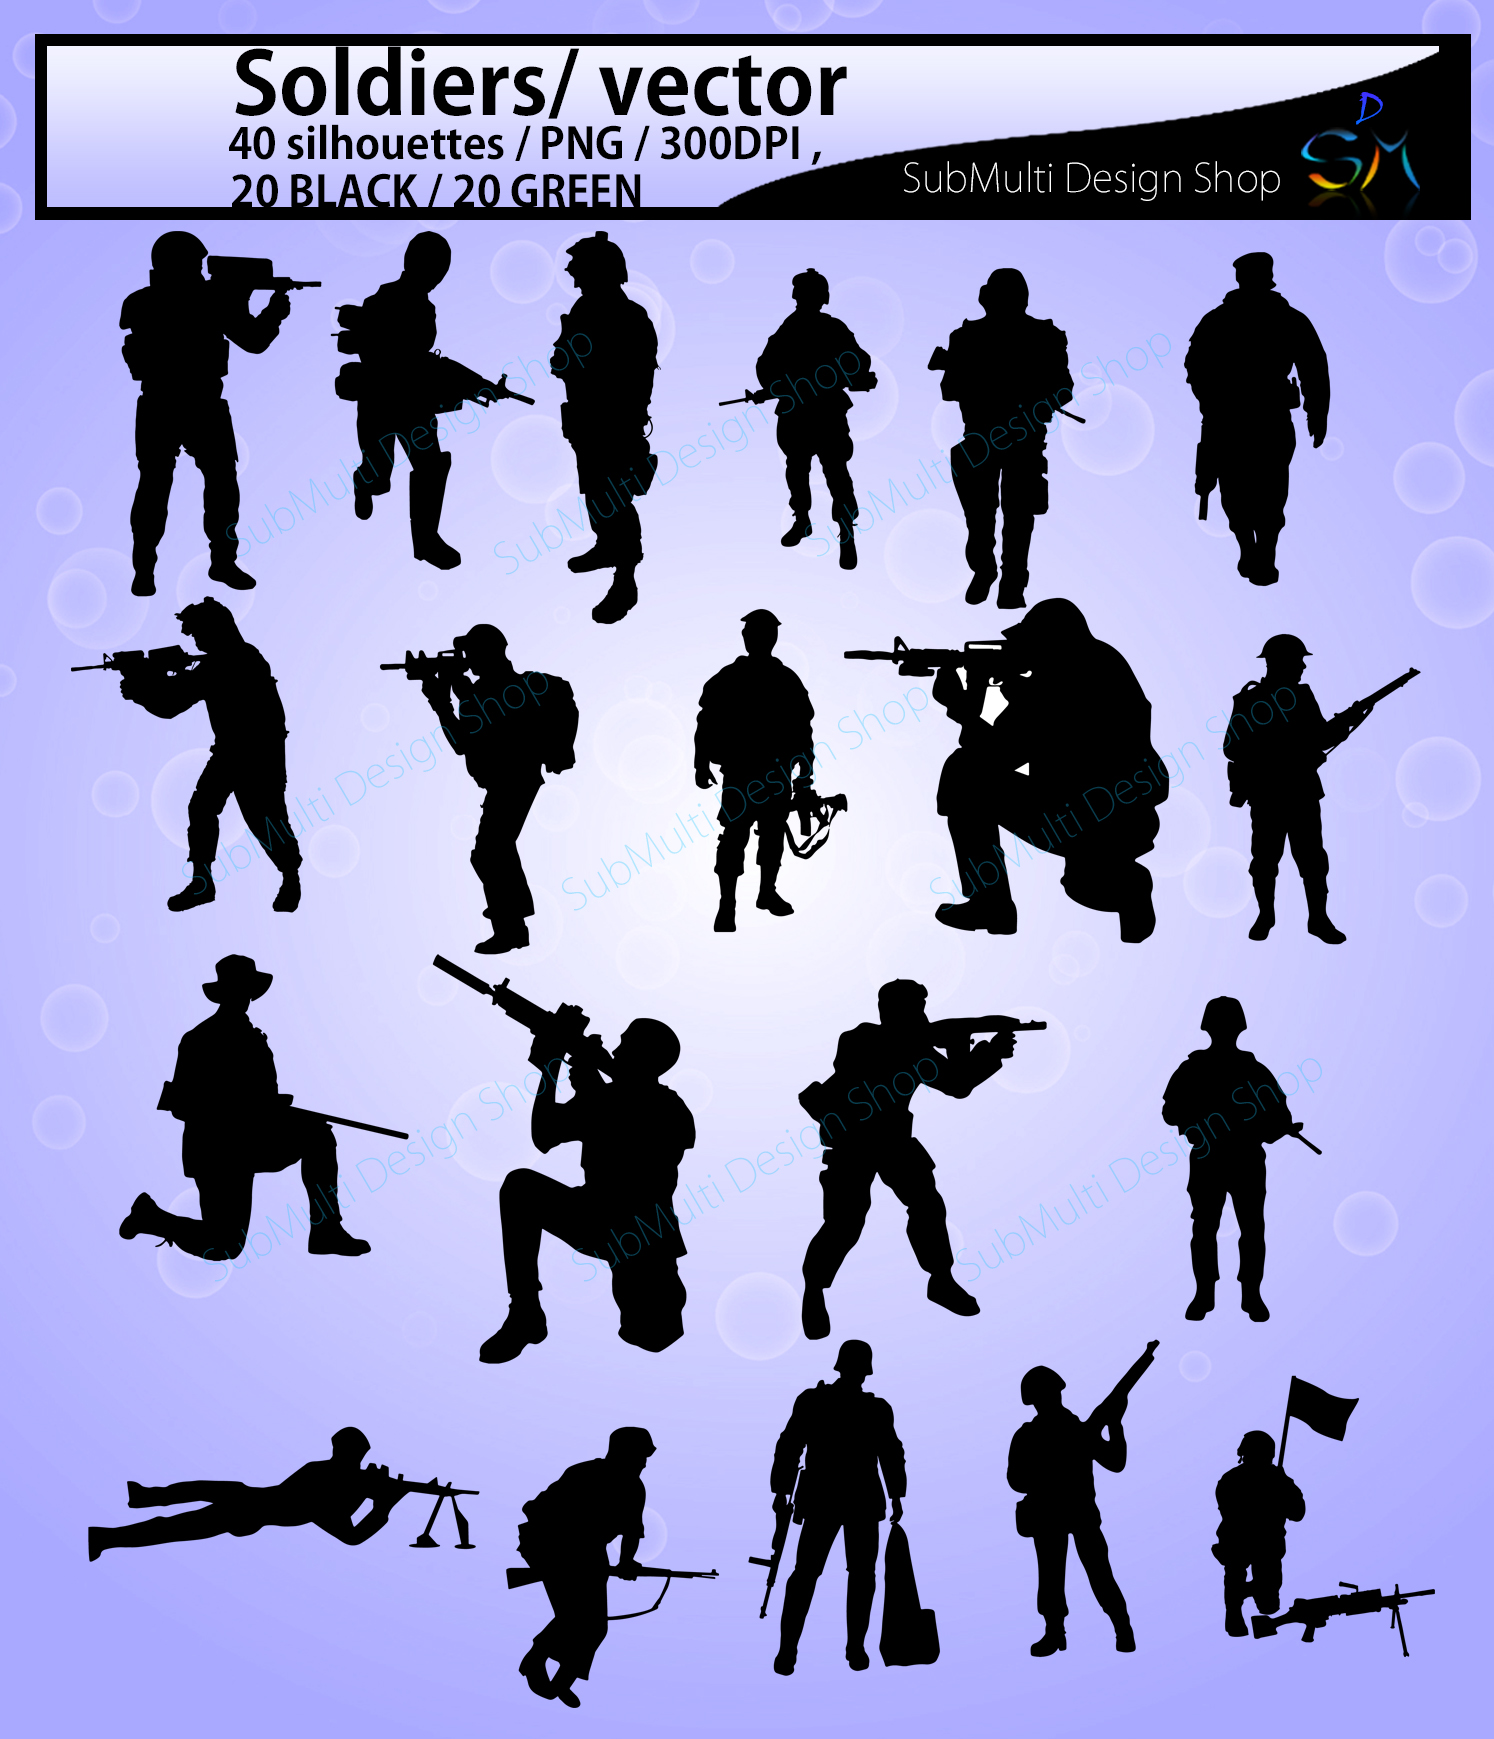 Soldiers svg / Soldiers silhouette / Hight Quality / Soldiers printable digital clipart / black and green / Army/ vector / PNG / SVG / EPS example image 2